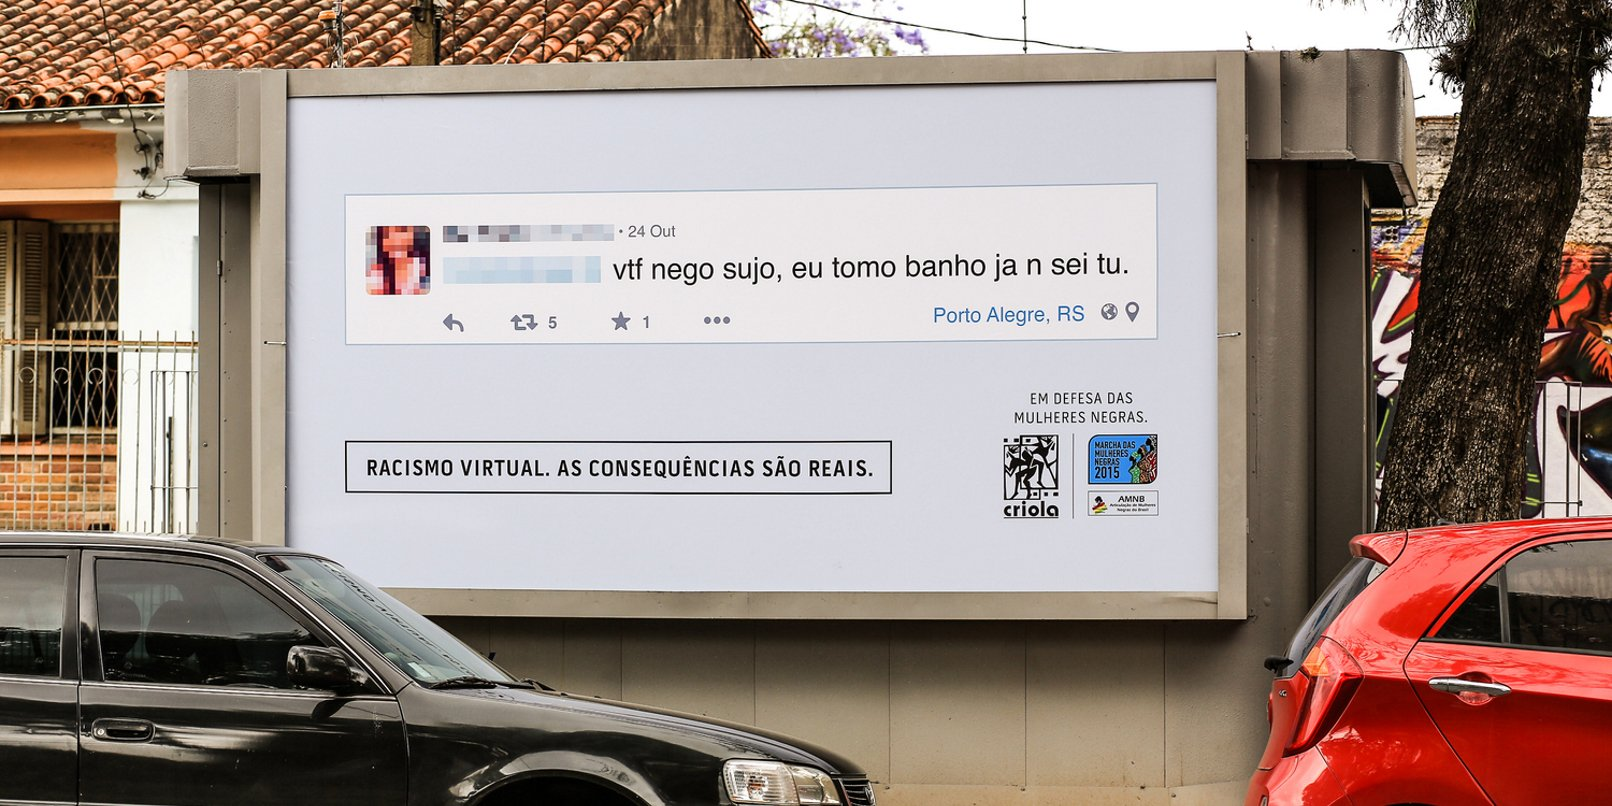 RT @TheNextWeb: Racist trolls are being shamed with billboards showing their messages near their homes https://t.co/WhGtqezZoj https://t.co…